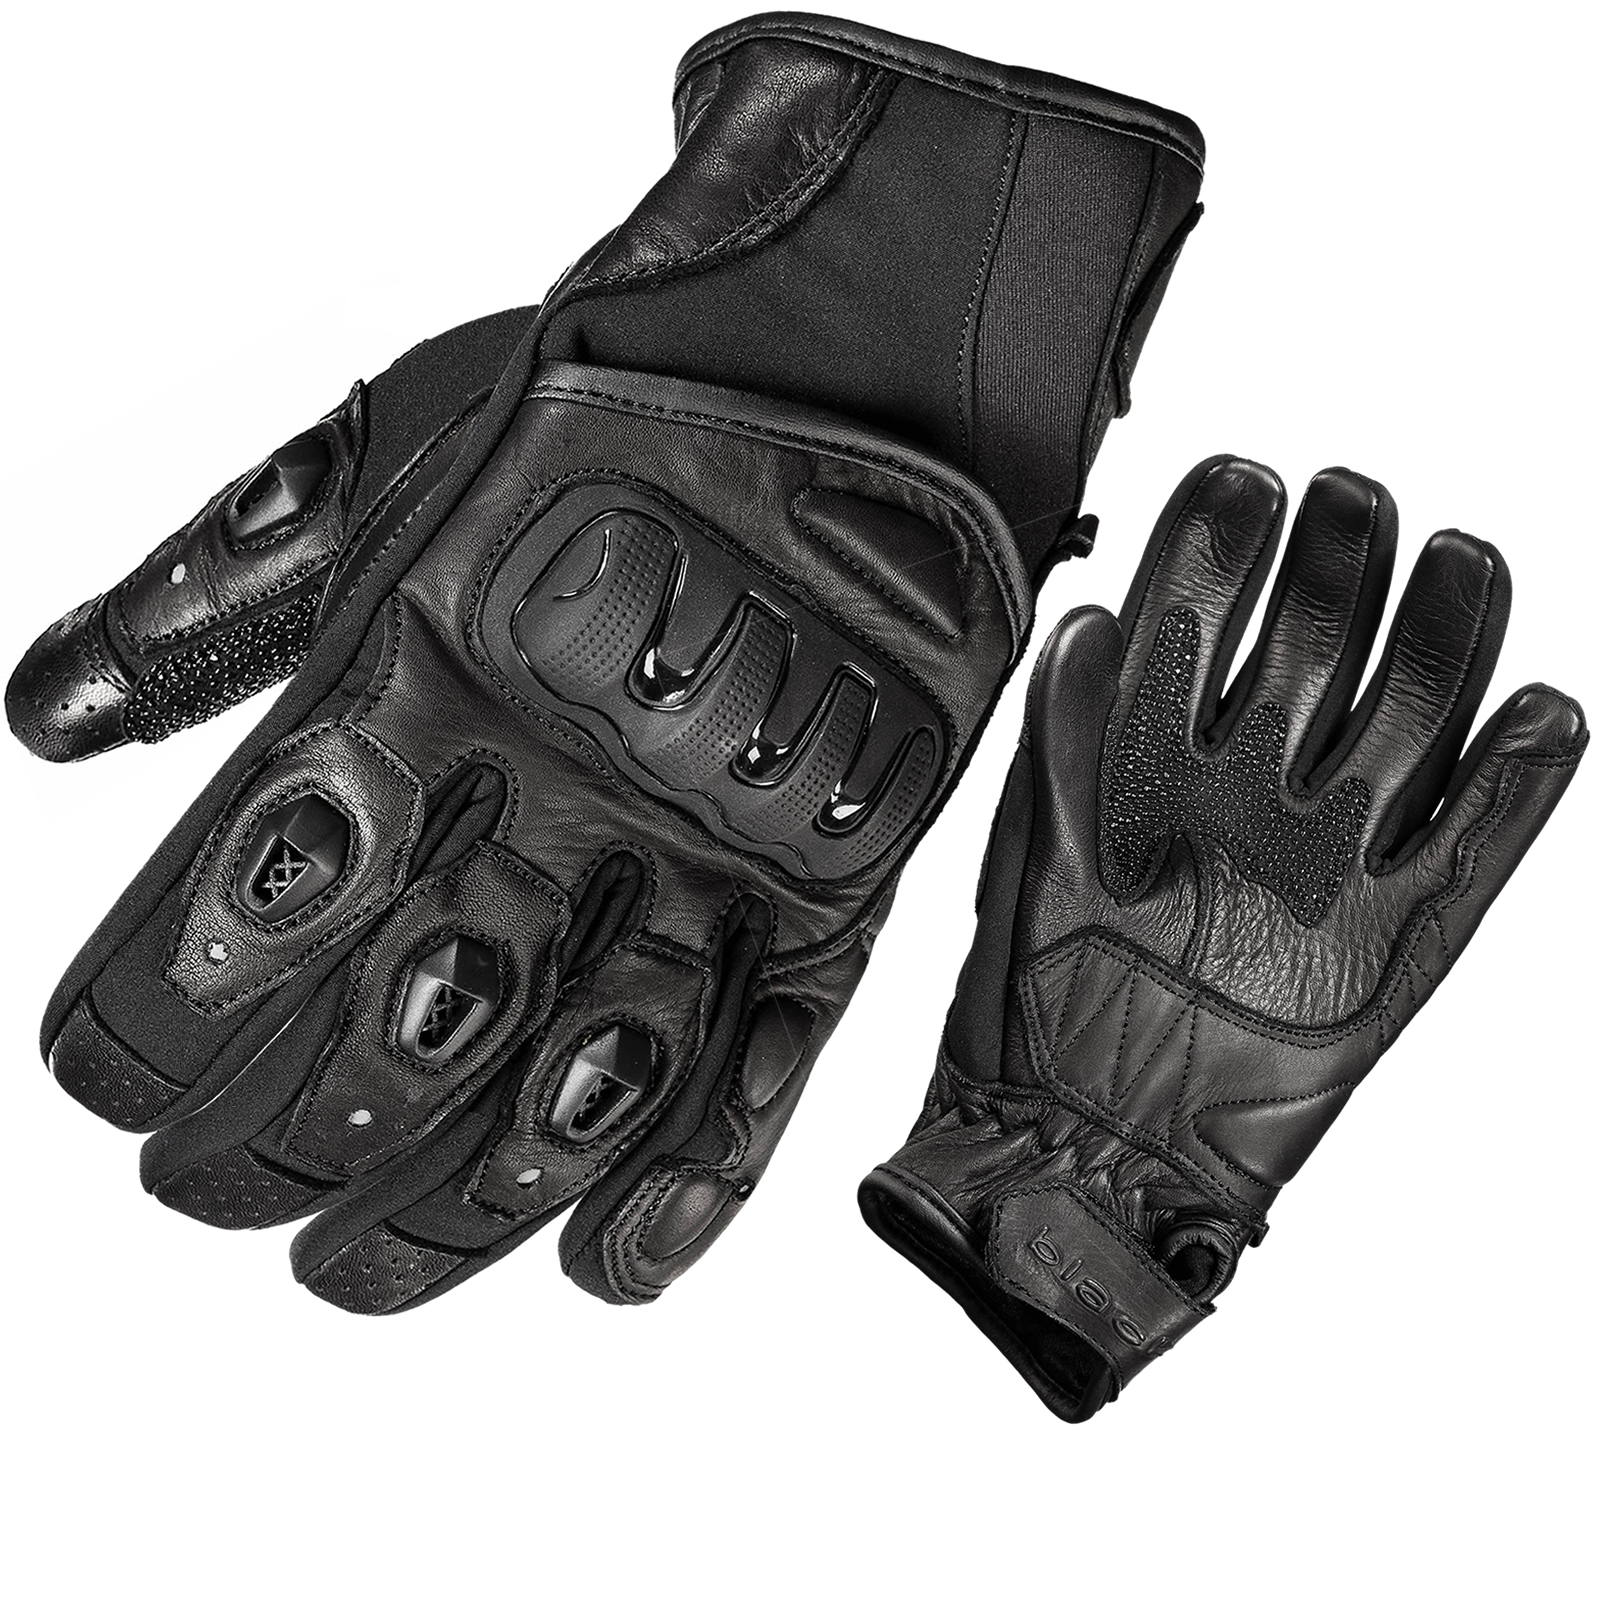 Buy leather gloves perth - Black Spike Leather Motorcycle Gloves